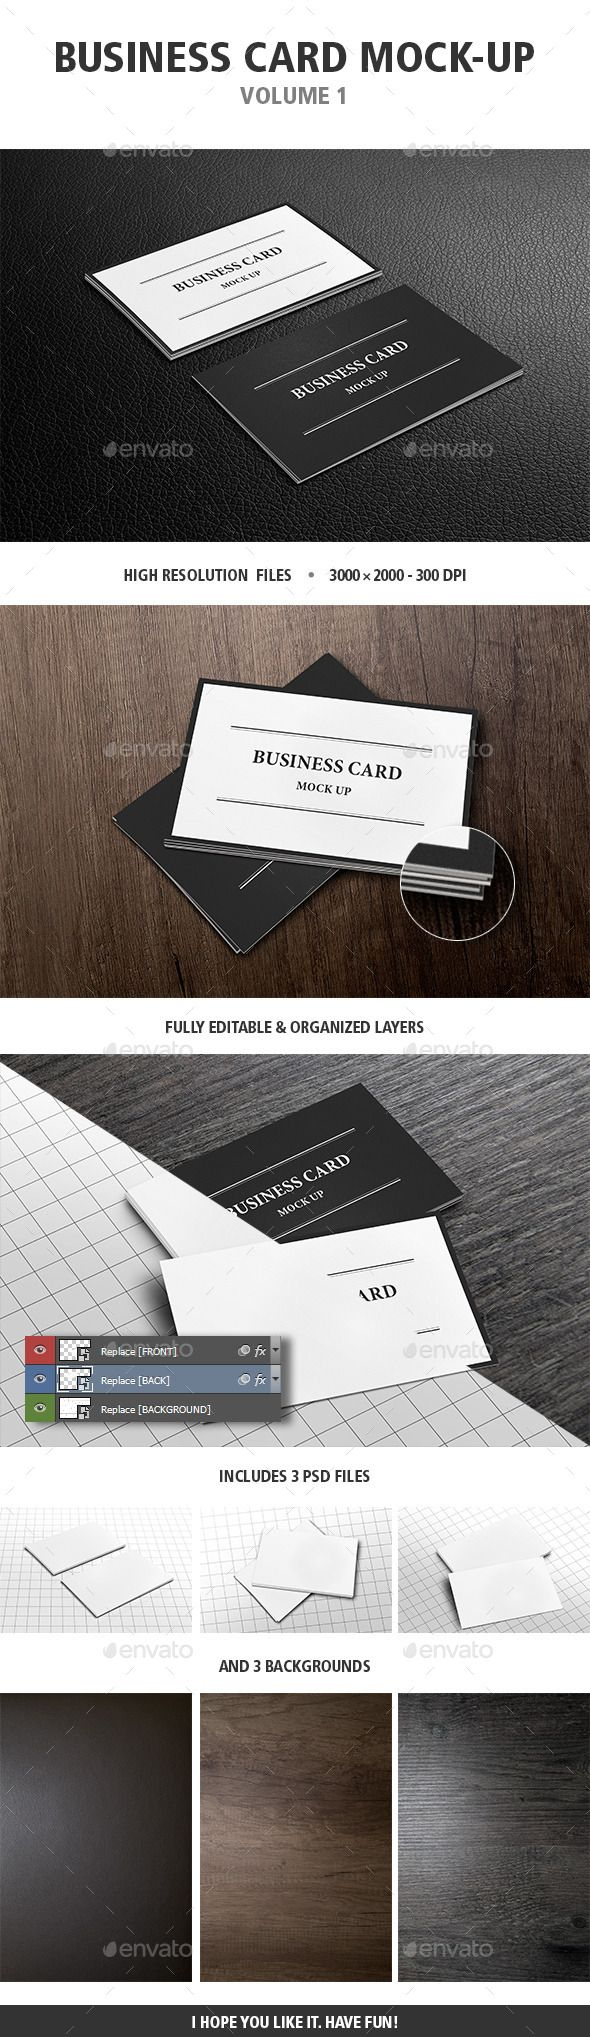 Business card mock up vol 1 mockup business cards and business business card mock up vol 1 reheart Image collections